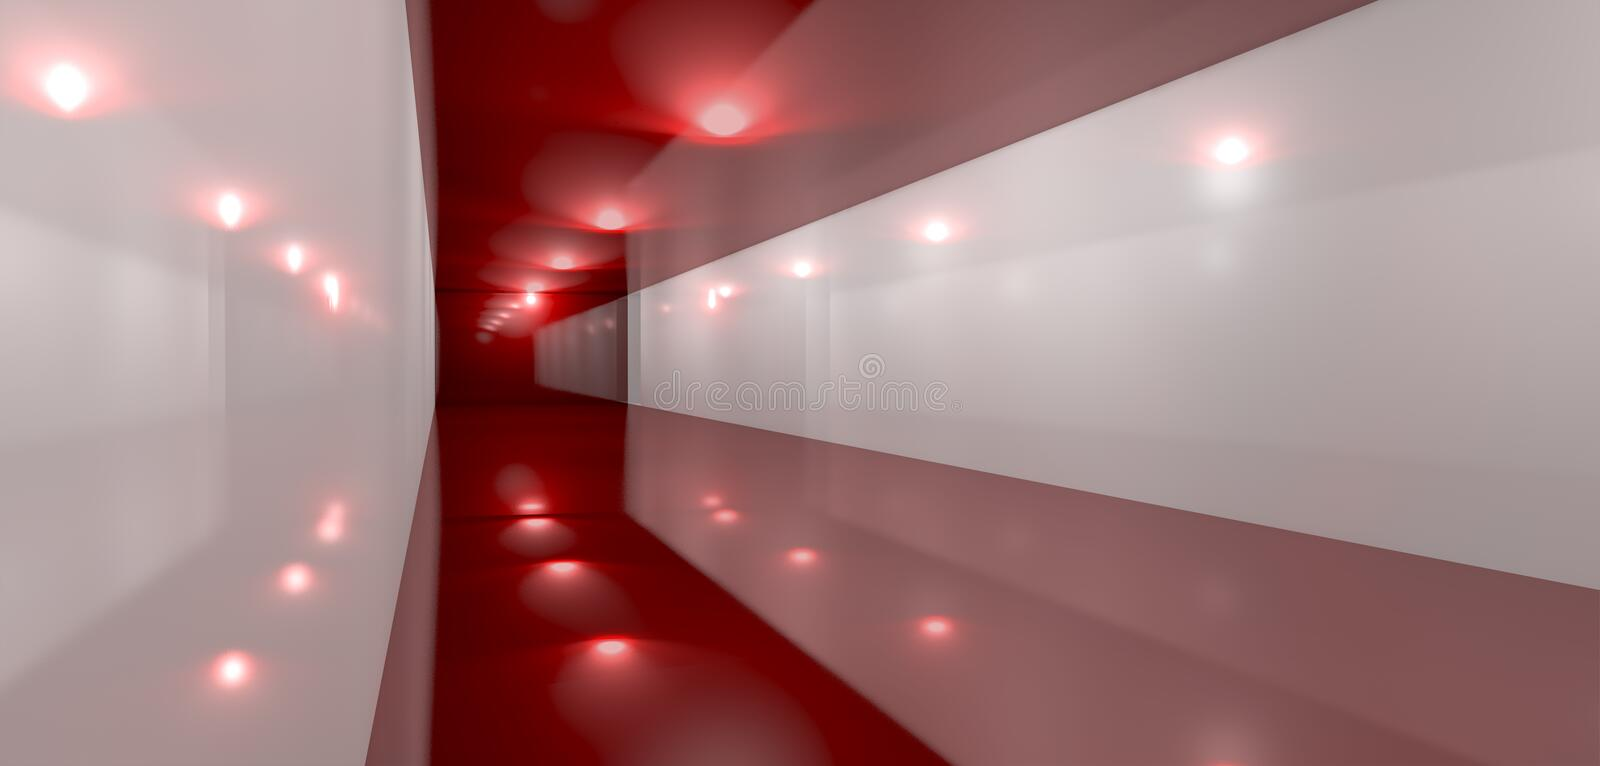 Download Glossy Red Room Perspective Side Stock Photos - Image: 32197543